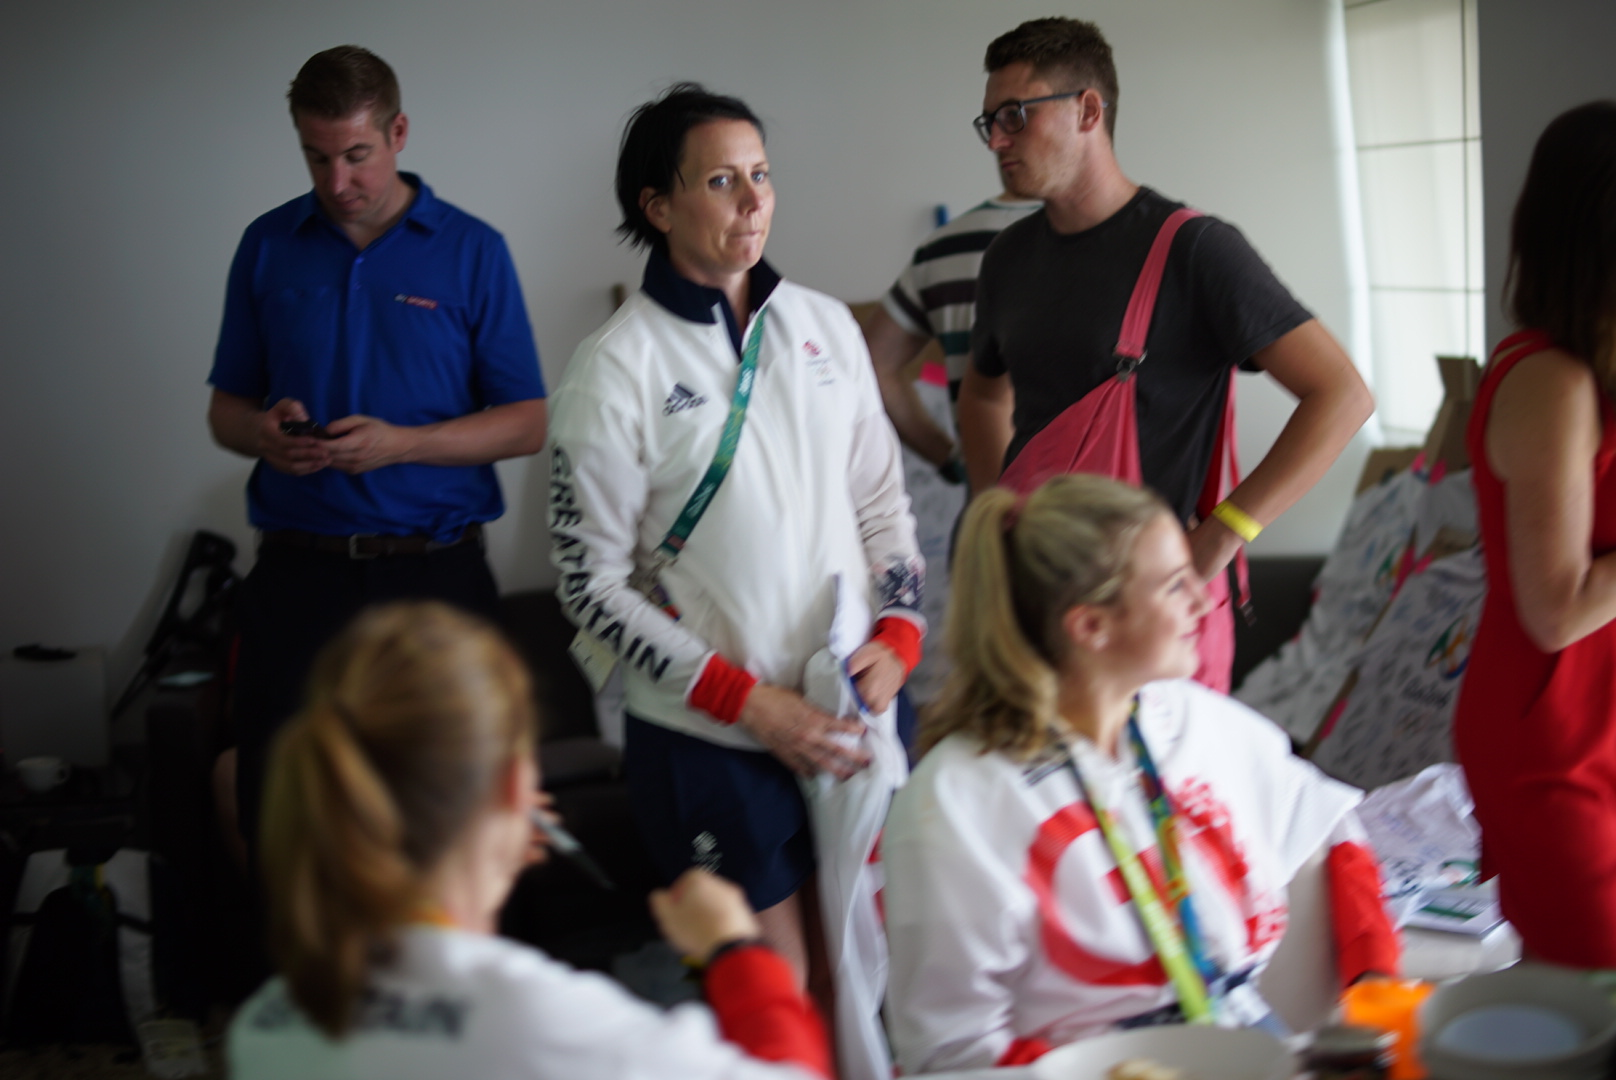 Me being far more interested in the football on telly than the five lovely gold medallists in the room...